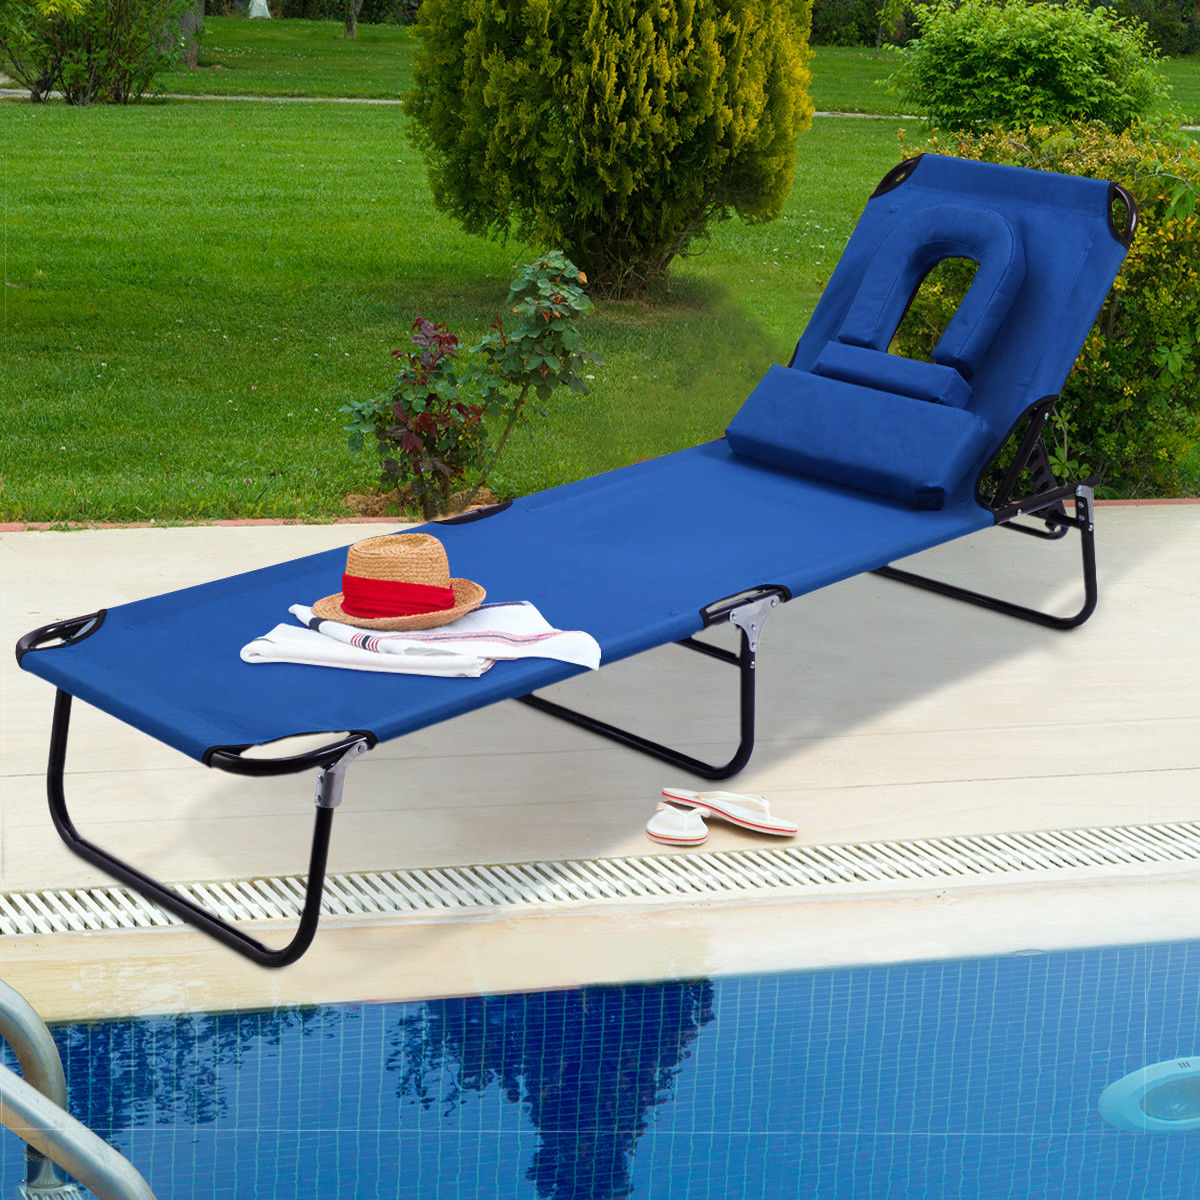 Costway Patio Foldable Chaise Lounge Chair Bed Outdoor Beach Camping  Recliner Pool Yard For Well Liked Outdoor Yard Pool Recliner Folding Lounge Table Chairs (View 3 of 25)